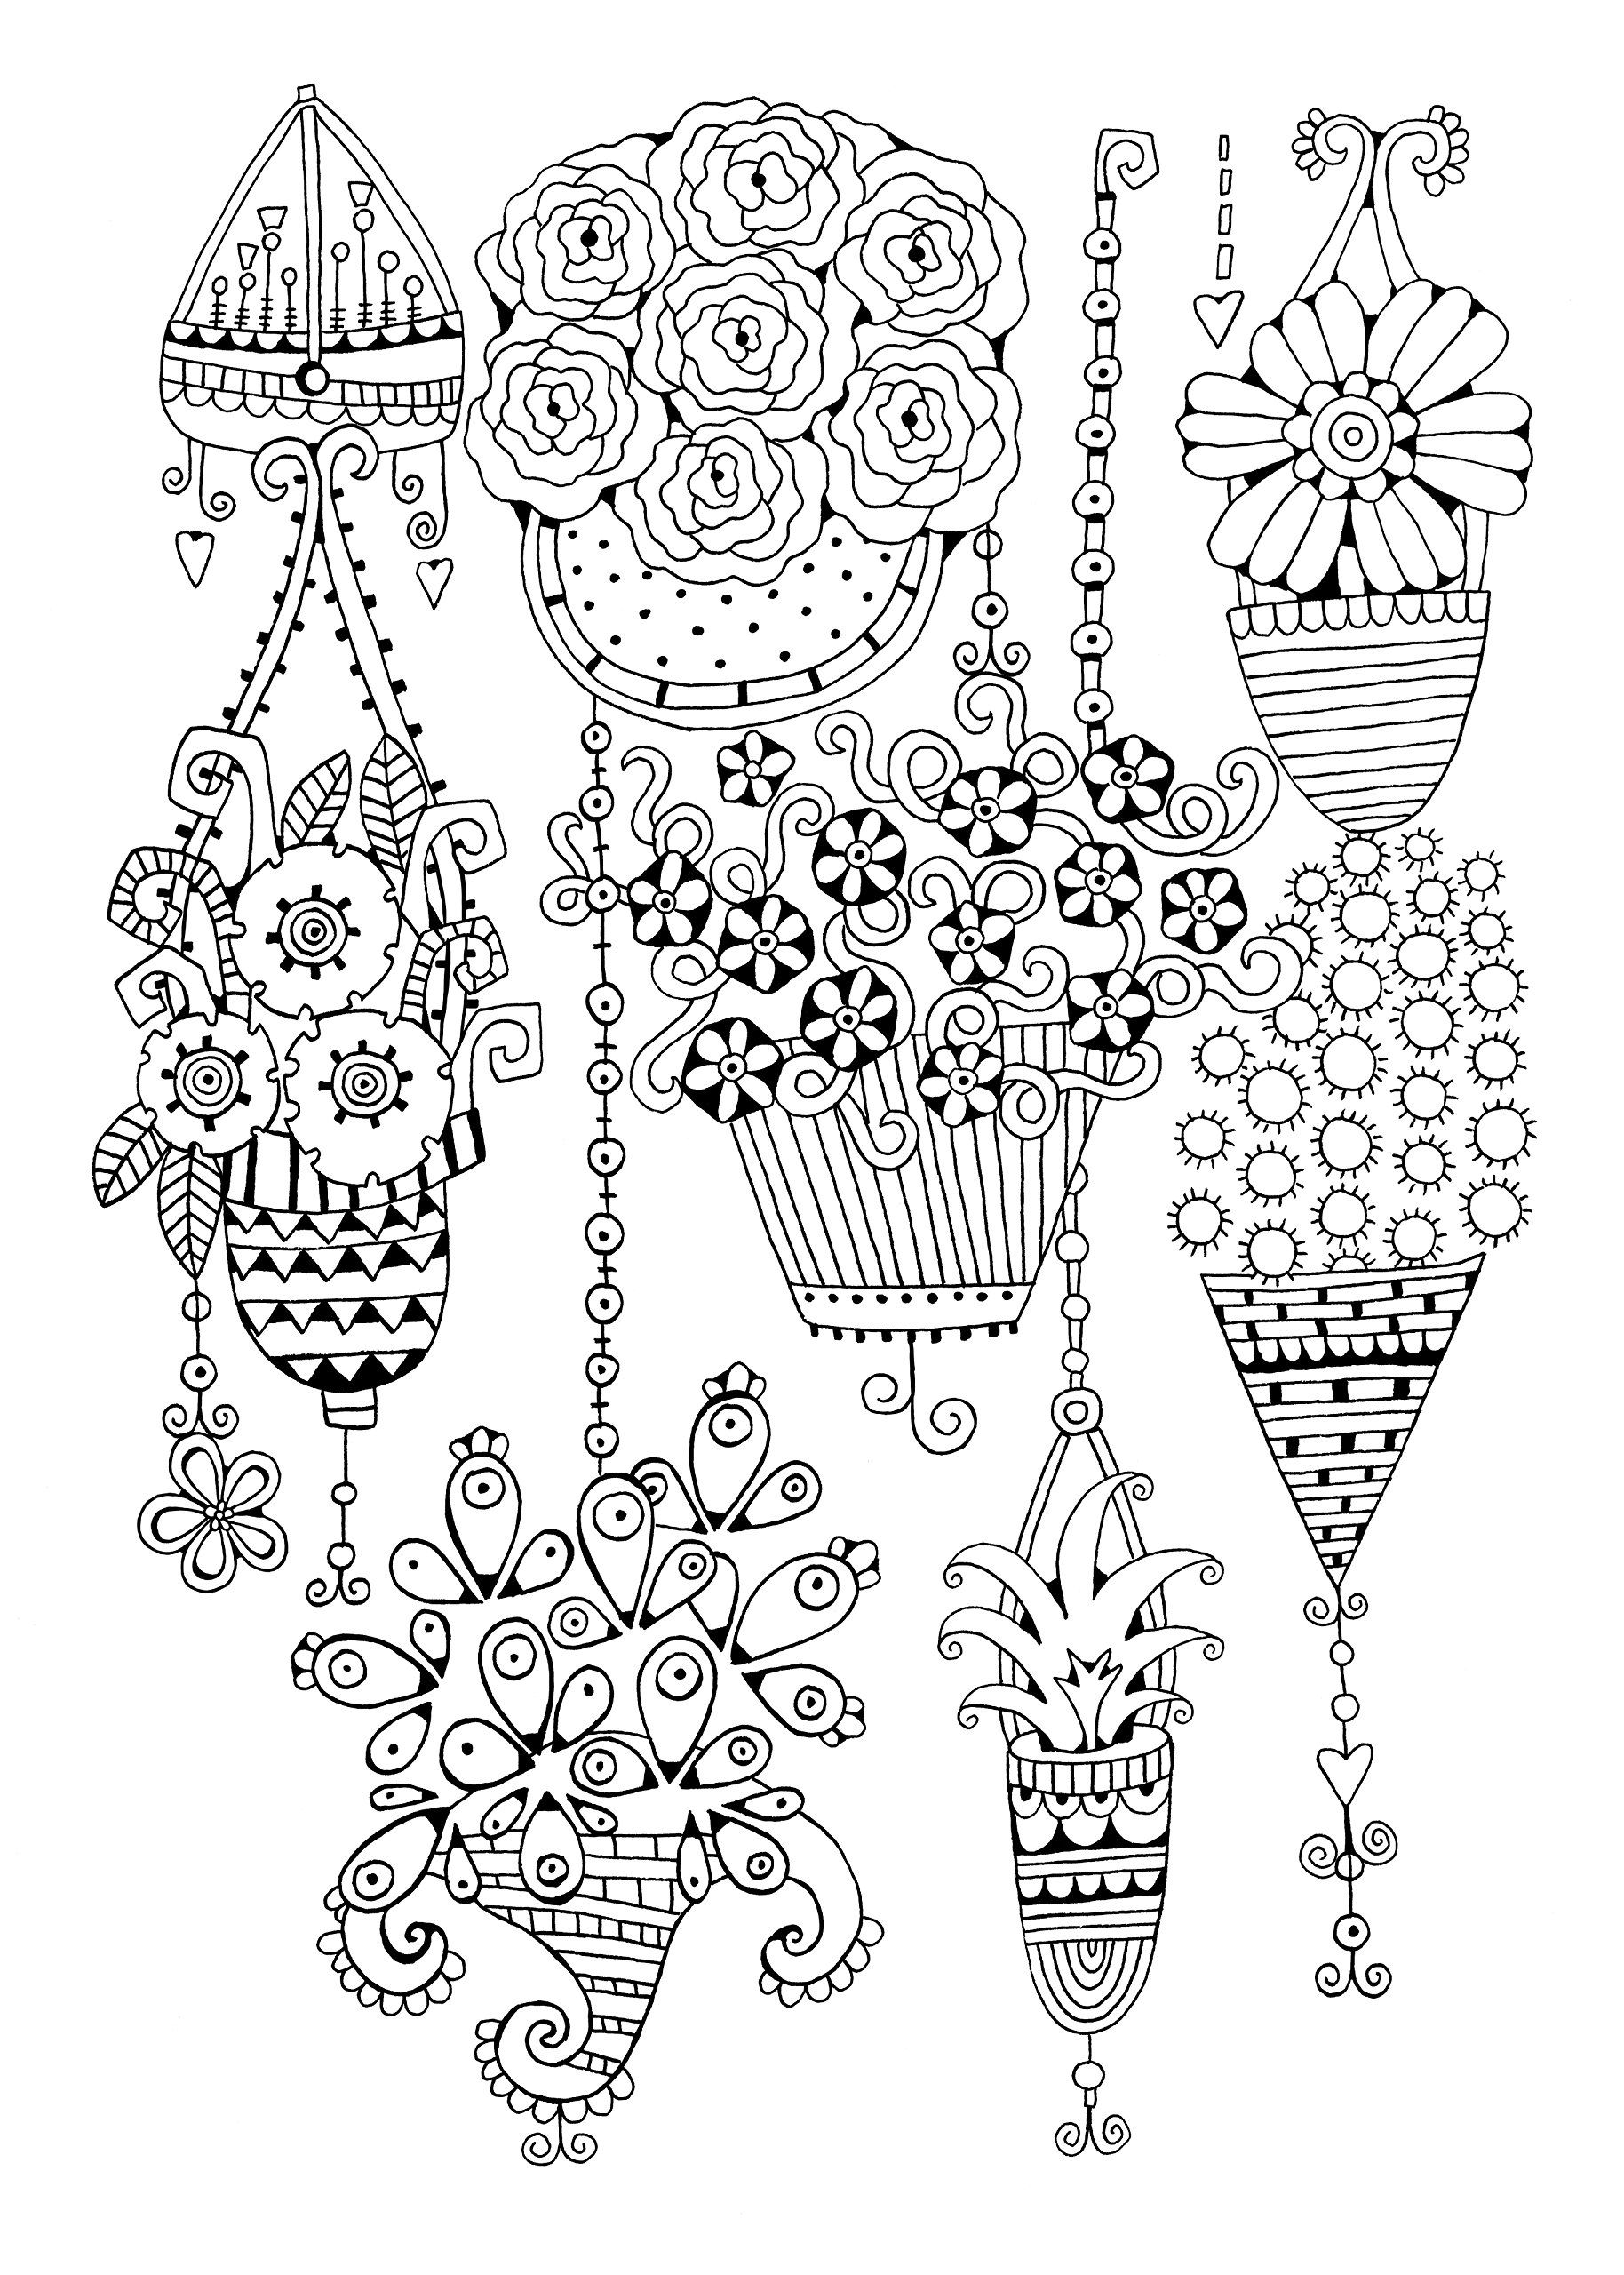 ColoringToolkit Coloriage If You Pen And WatercolorColoring BooksColouringColoring